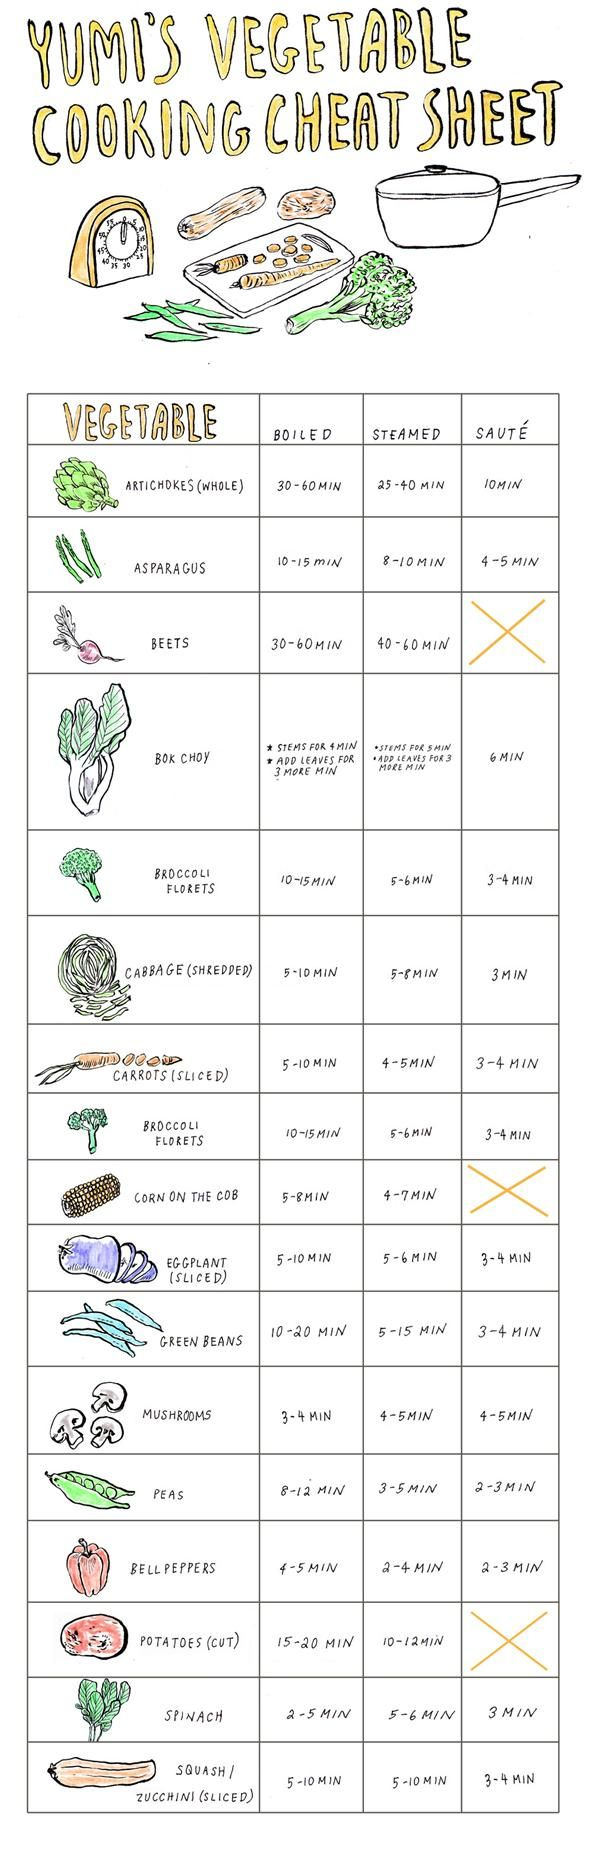 Print and Frame, yes! : Veggies Cooking, Cooking Cheat, Cheat Sheet, Veggies Cheat, Cooking Veggies, Cooking Tips, Cooking Vegetables, Cheatsheet, Vegetables Cooking